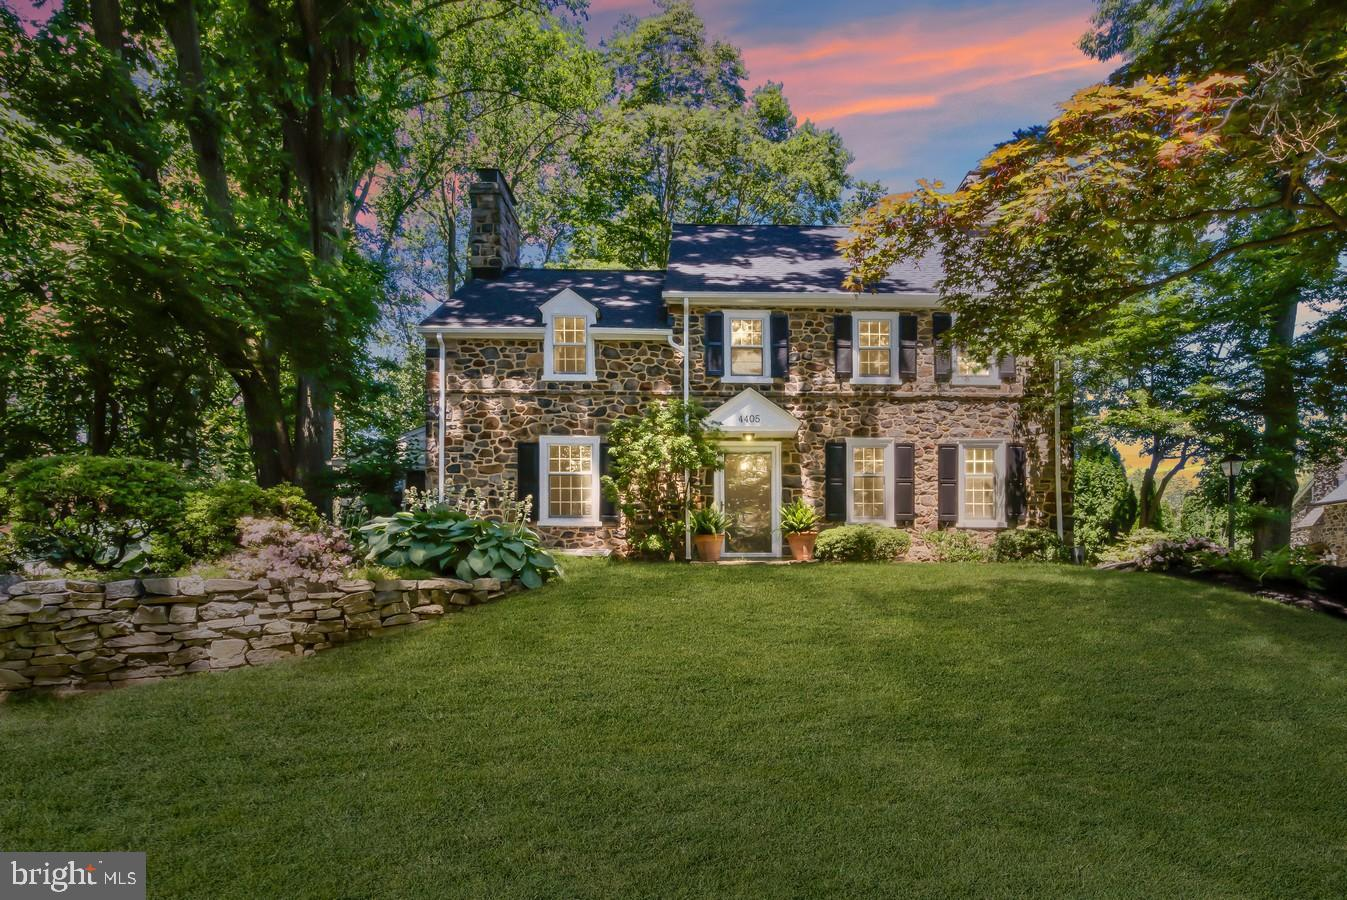 This is the one on Whittier Rd.! Stately, stone circa 1937 – 4 Bed/3.5 bath Colonial in Brandywine Hills is majestically perched on gently sloping lot with waterfall of blooms and bushes, pockets of perennial plantings and stone walls enhancing landscaped beds. Detached stone, 2-car garage is tucked behind home, preserving graceful front curb appeal. Amid one of largest lots for the city, home is nestled on coveted street with myriad of city conveniences. Home is 1 block from Delaware Greenway/Rockwood Park, 10 mins. to downtown Wilm. restaurants/entertainment/Amtrak train station and 25 mins. to PHL Int'l. Airport. Enjoy upgrades of new paint in many interior rooms/stove (2021), new exterior paint (2020), new roof/gutters (2019), new patio (2018) and 2.5 renovated baths. Also new: plantation shutters, recessed lighting, landscaping w/ invisible fence, newer windows and kitchen. Old world charm blends with modern, must-have amenities! Appreciate earlier decade-defining details like random width peg board floors, deep recessed windows, arched doorways, ornate crown molding, lovely build-ins, exposed radiators, glass knobs and more. Natural wood French doors lead into LR where built-in bookcase borders wood burning FP, wainscoting/crown molding edge perimeter and bay window spans back wall. French door leads to sunken side 3 season sunroom with exit. Exposed stone wall and floor mingle with series of windows and natural wood paneling to create room that blooms! The room was cleverly converted into 1st-floor, off hub-of-home office with privacy and personality. From FR, access to hall and PR with angled ceramic tile floor and angled ceramic tile top vanity and copper sink, closet and entrance to LL. Carpeted LL FR boasts charming brick FP flanked by build-in bookcases with generous screen on wall. Approachable space where movie nights are quite the delight! Note unfinished area of W & D/dual utility sink with guarantee of storage and easy, walk out. Off foyer and oppos